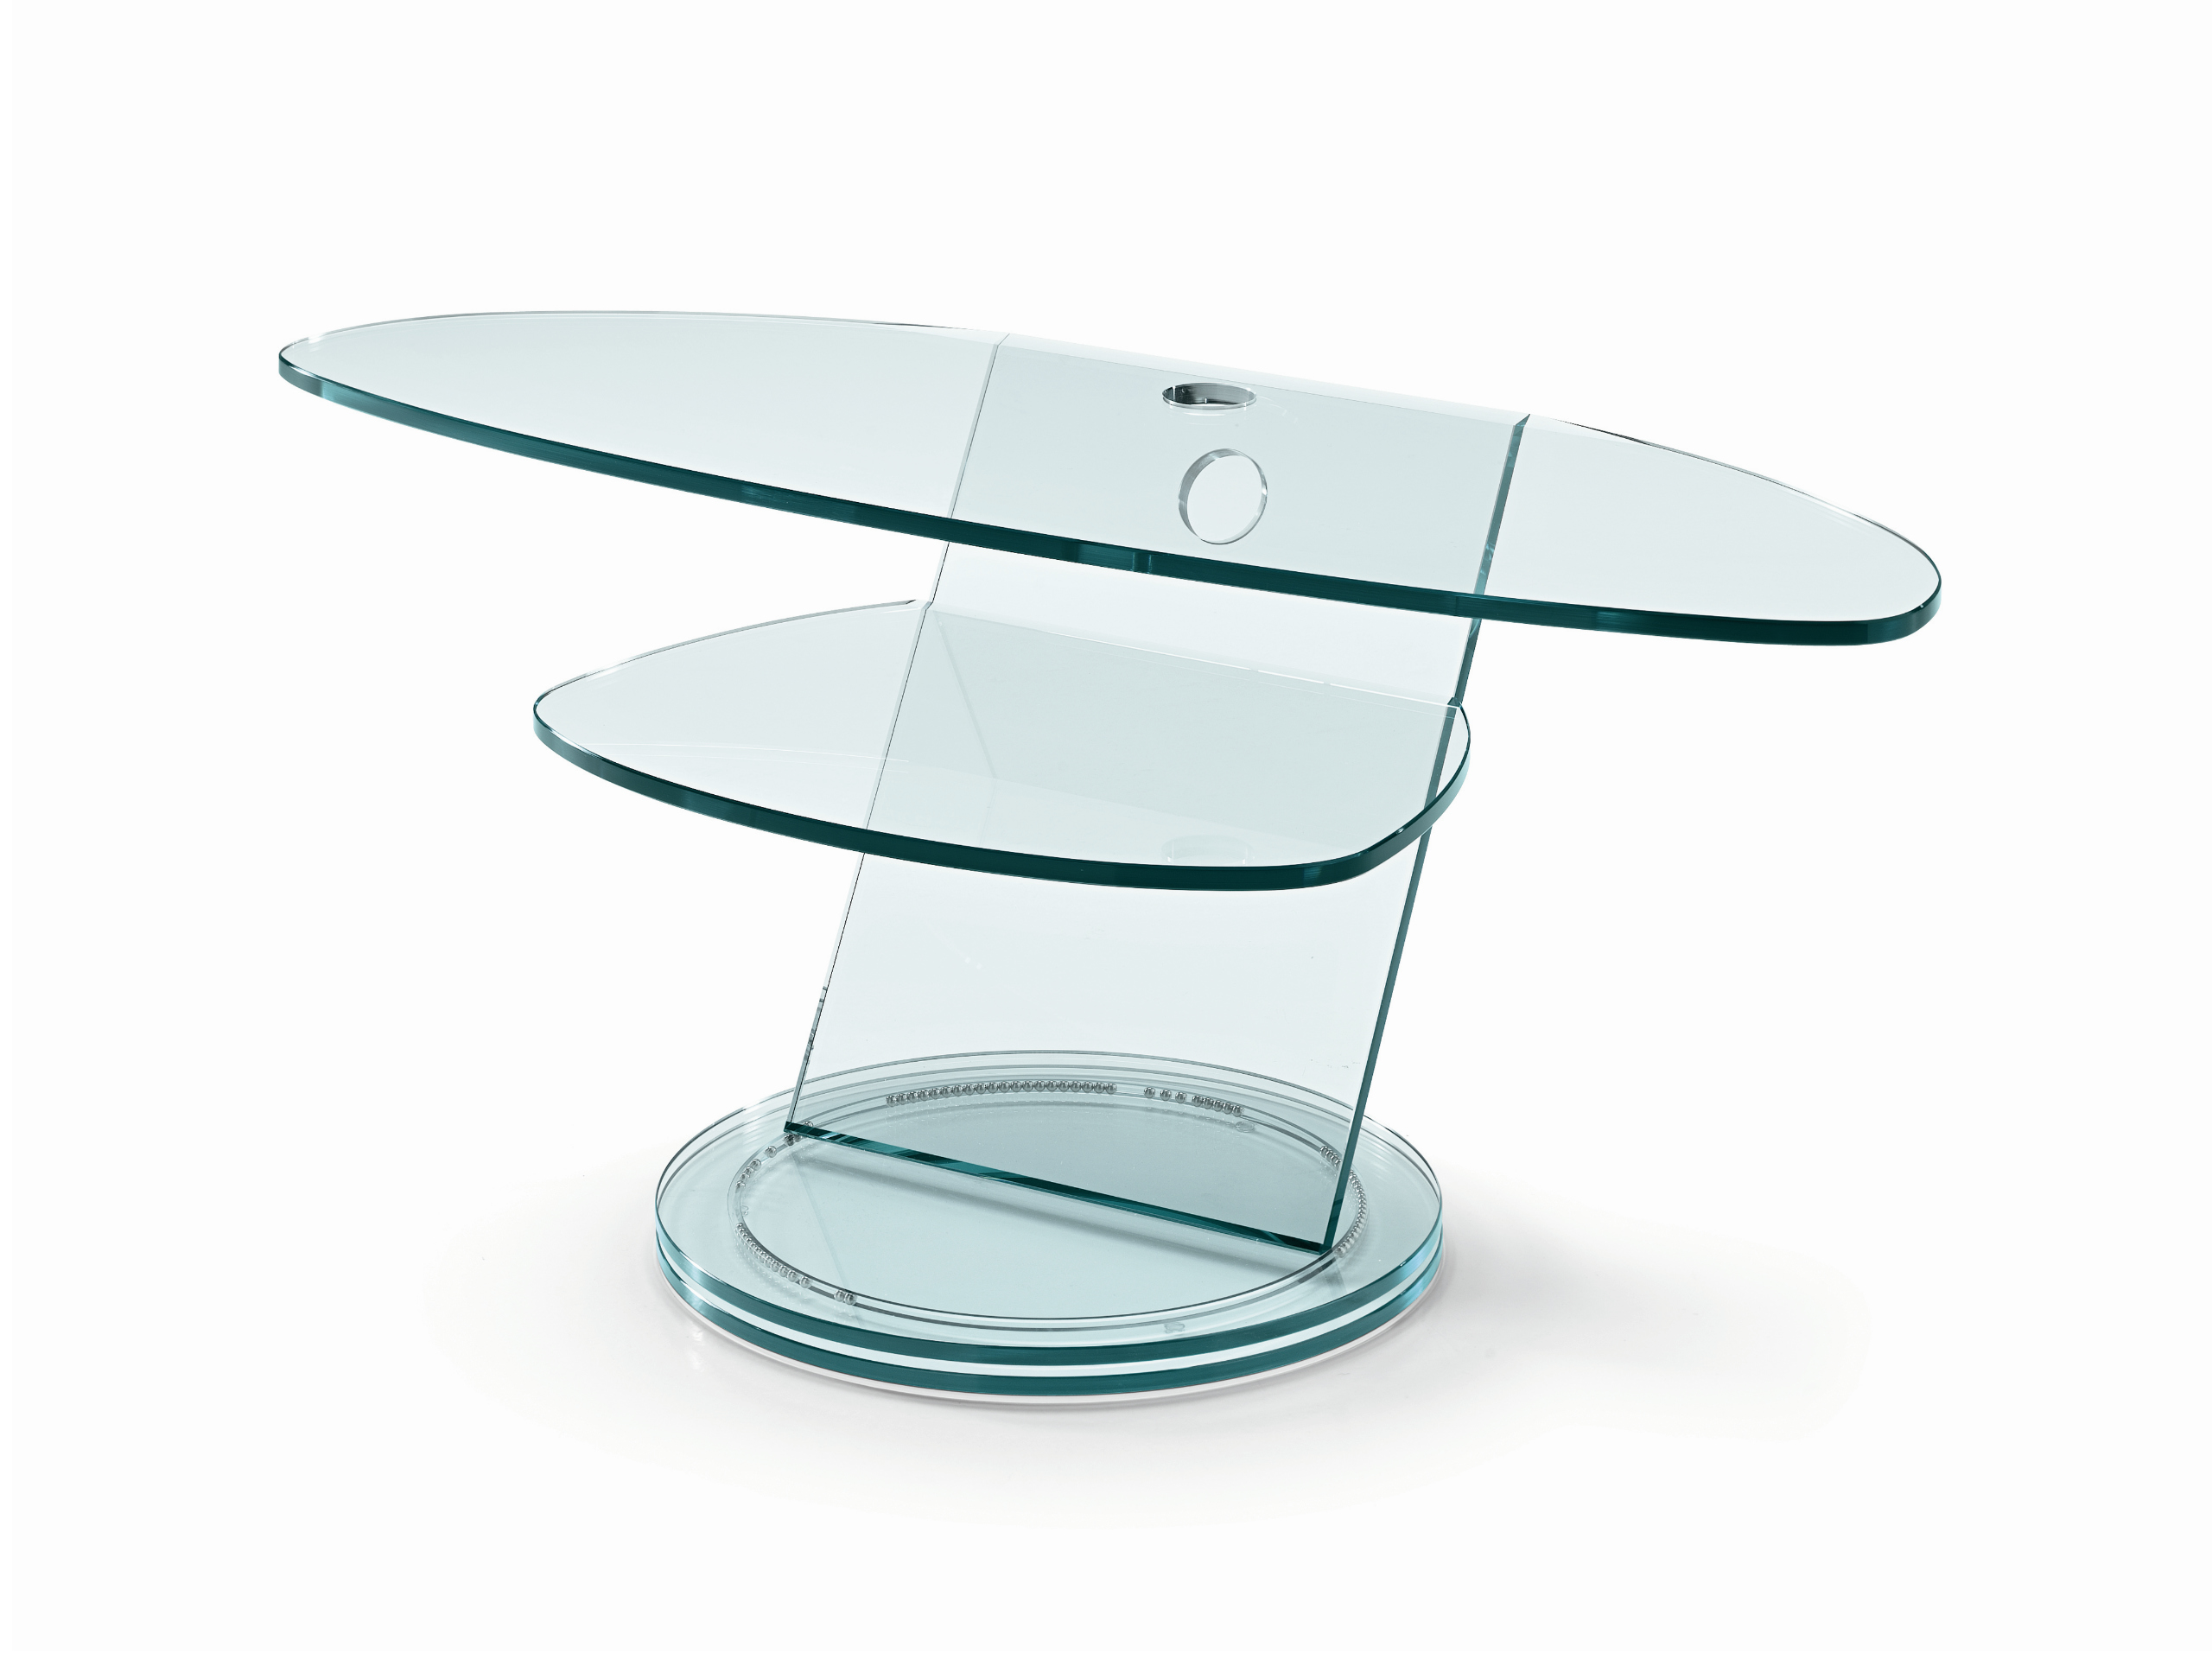 Meuble tv en verre scenario by t d tonelli design design for Table tv en verre